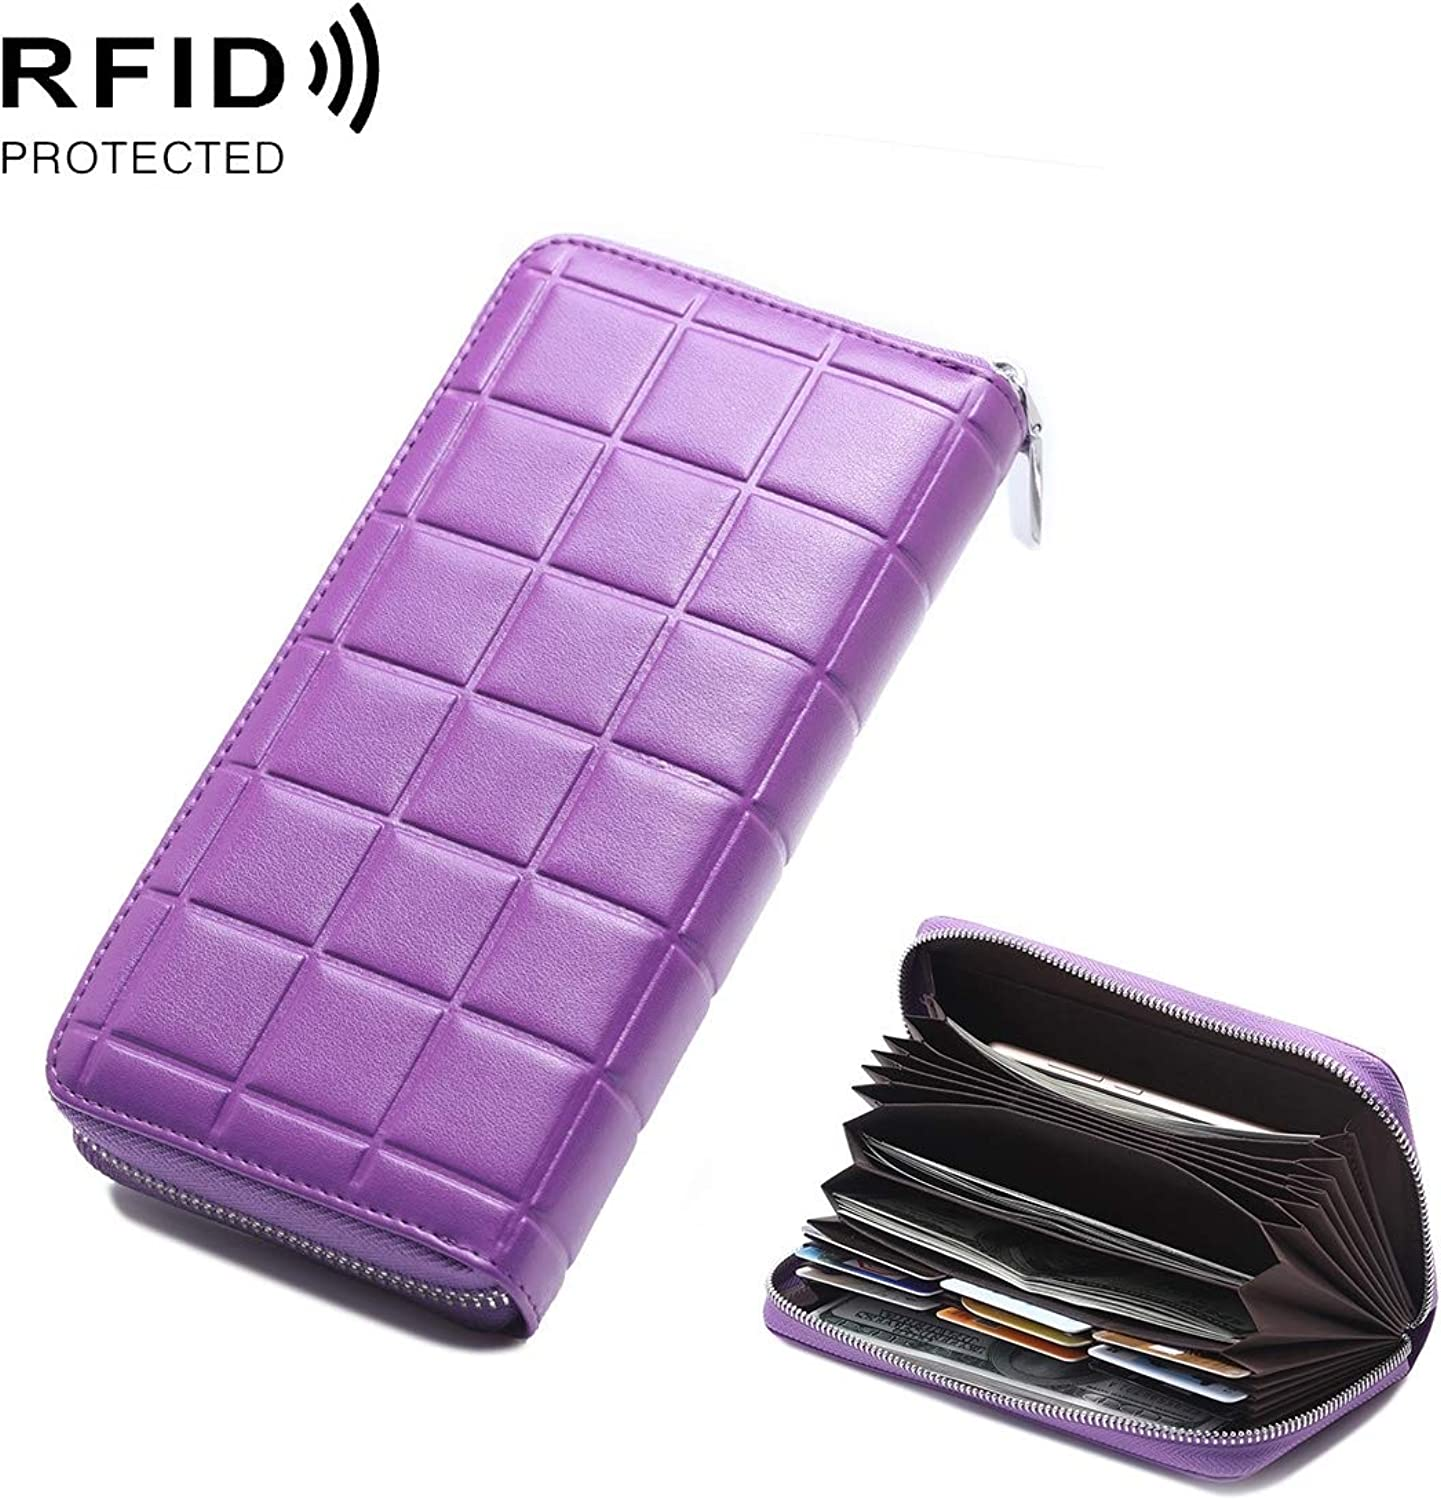 Professional Bag Antimagnetic RFID Female Large Capacity Casual Square Organ Card Bag Wallet Clutch Bag 903 Outdoor Travel Essentials (color   Purple)